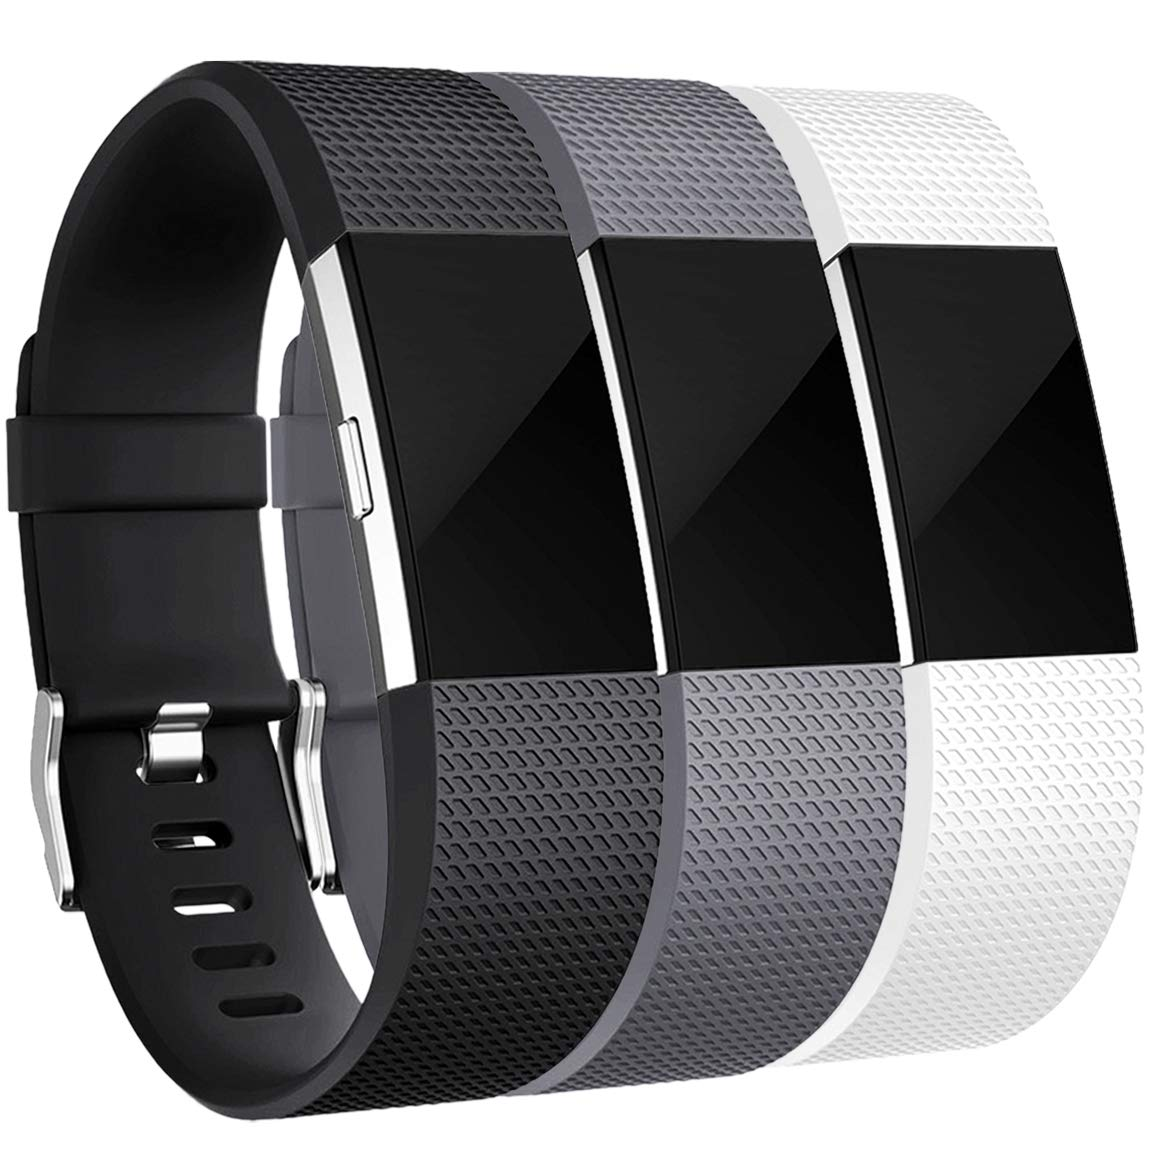 Maledan Bands Replacement Compatible with Fitbit Charge 2, 3-Pack, Small Black/Gray/White